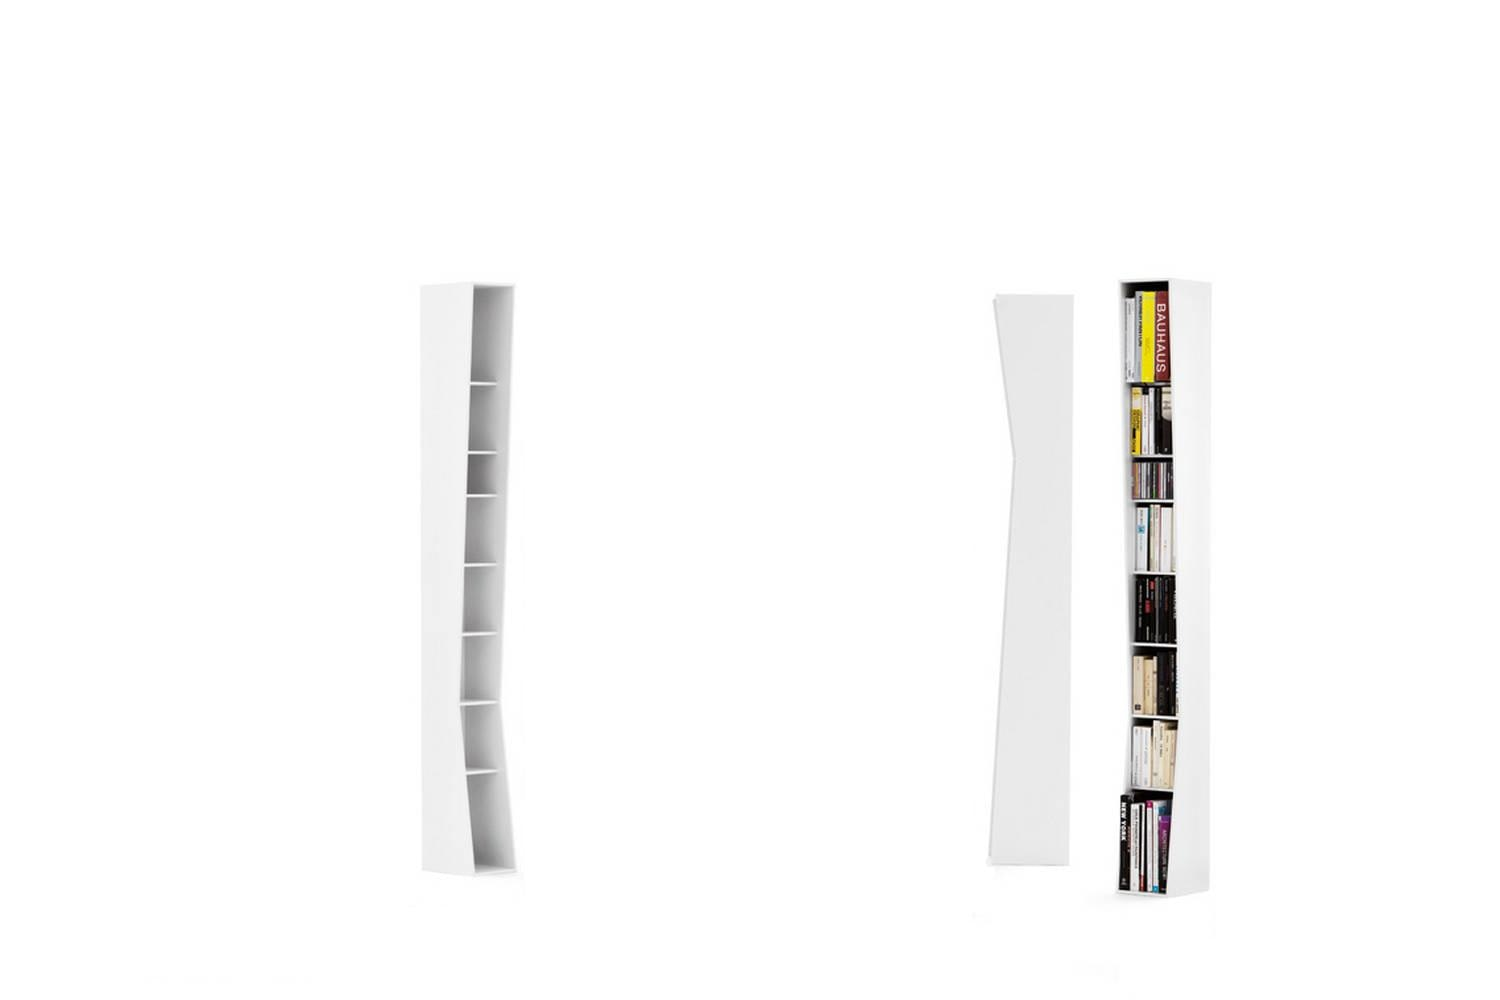 Uptown 7 Shelves Bookshelf by Lapo Ciatti for Opinion Ciatti